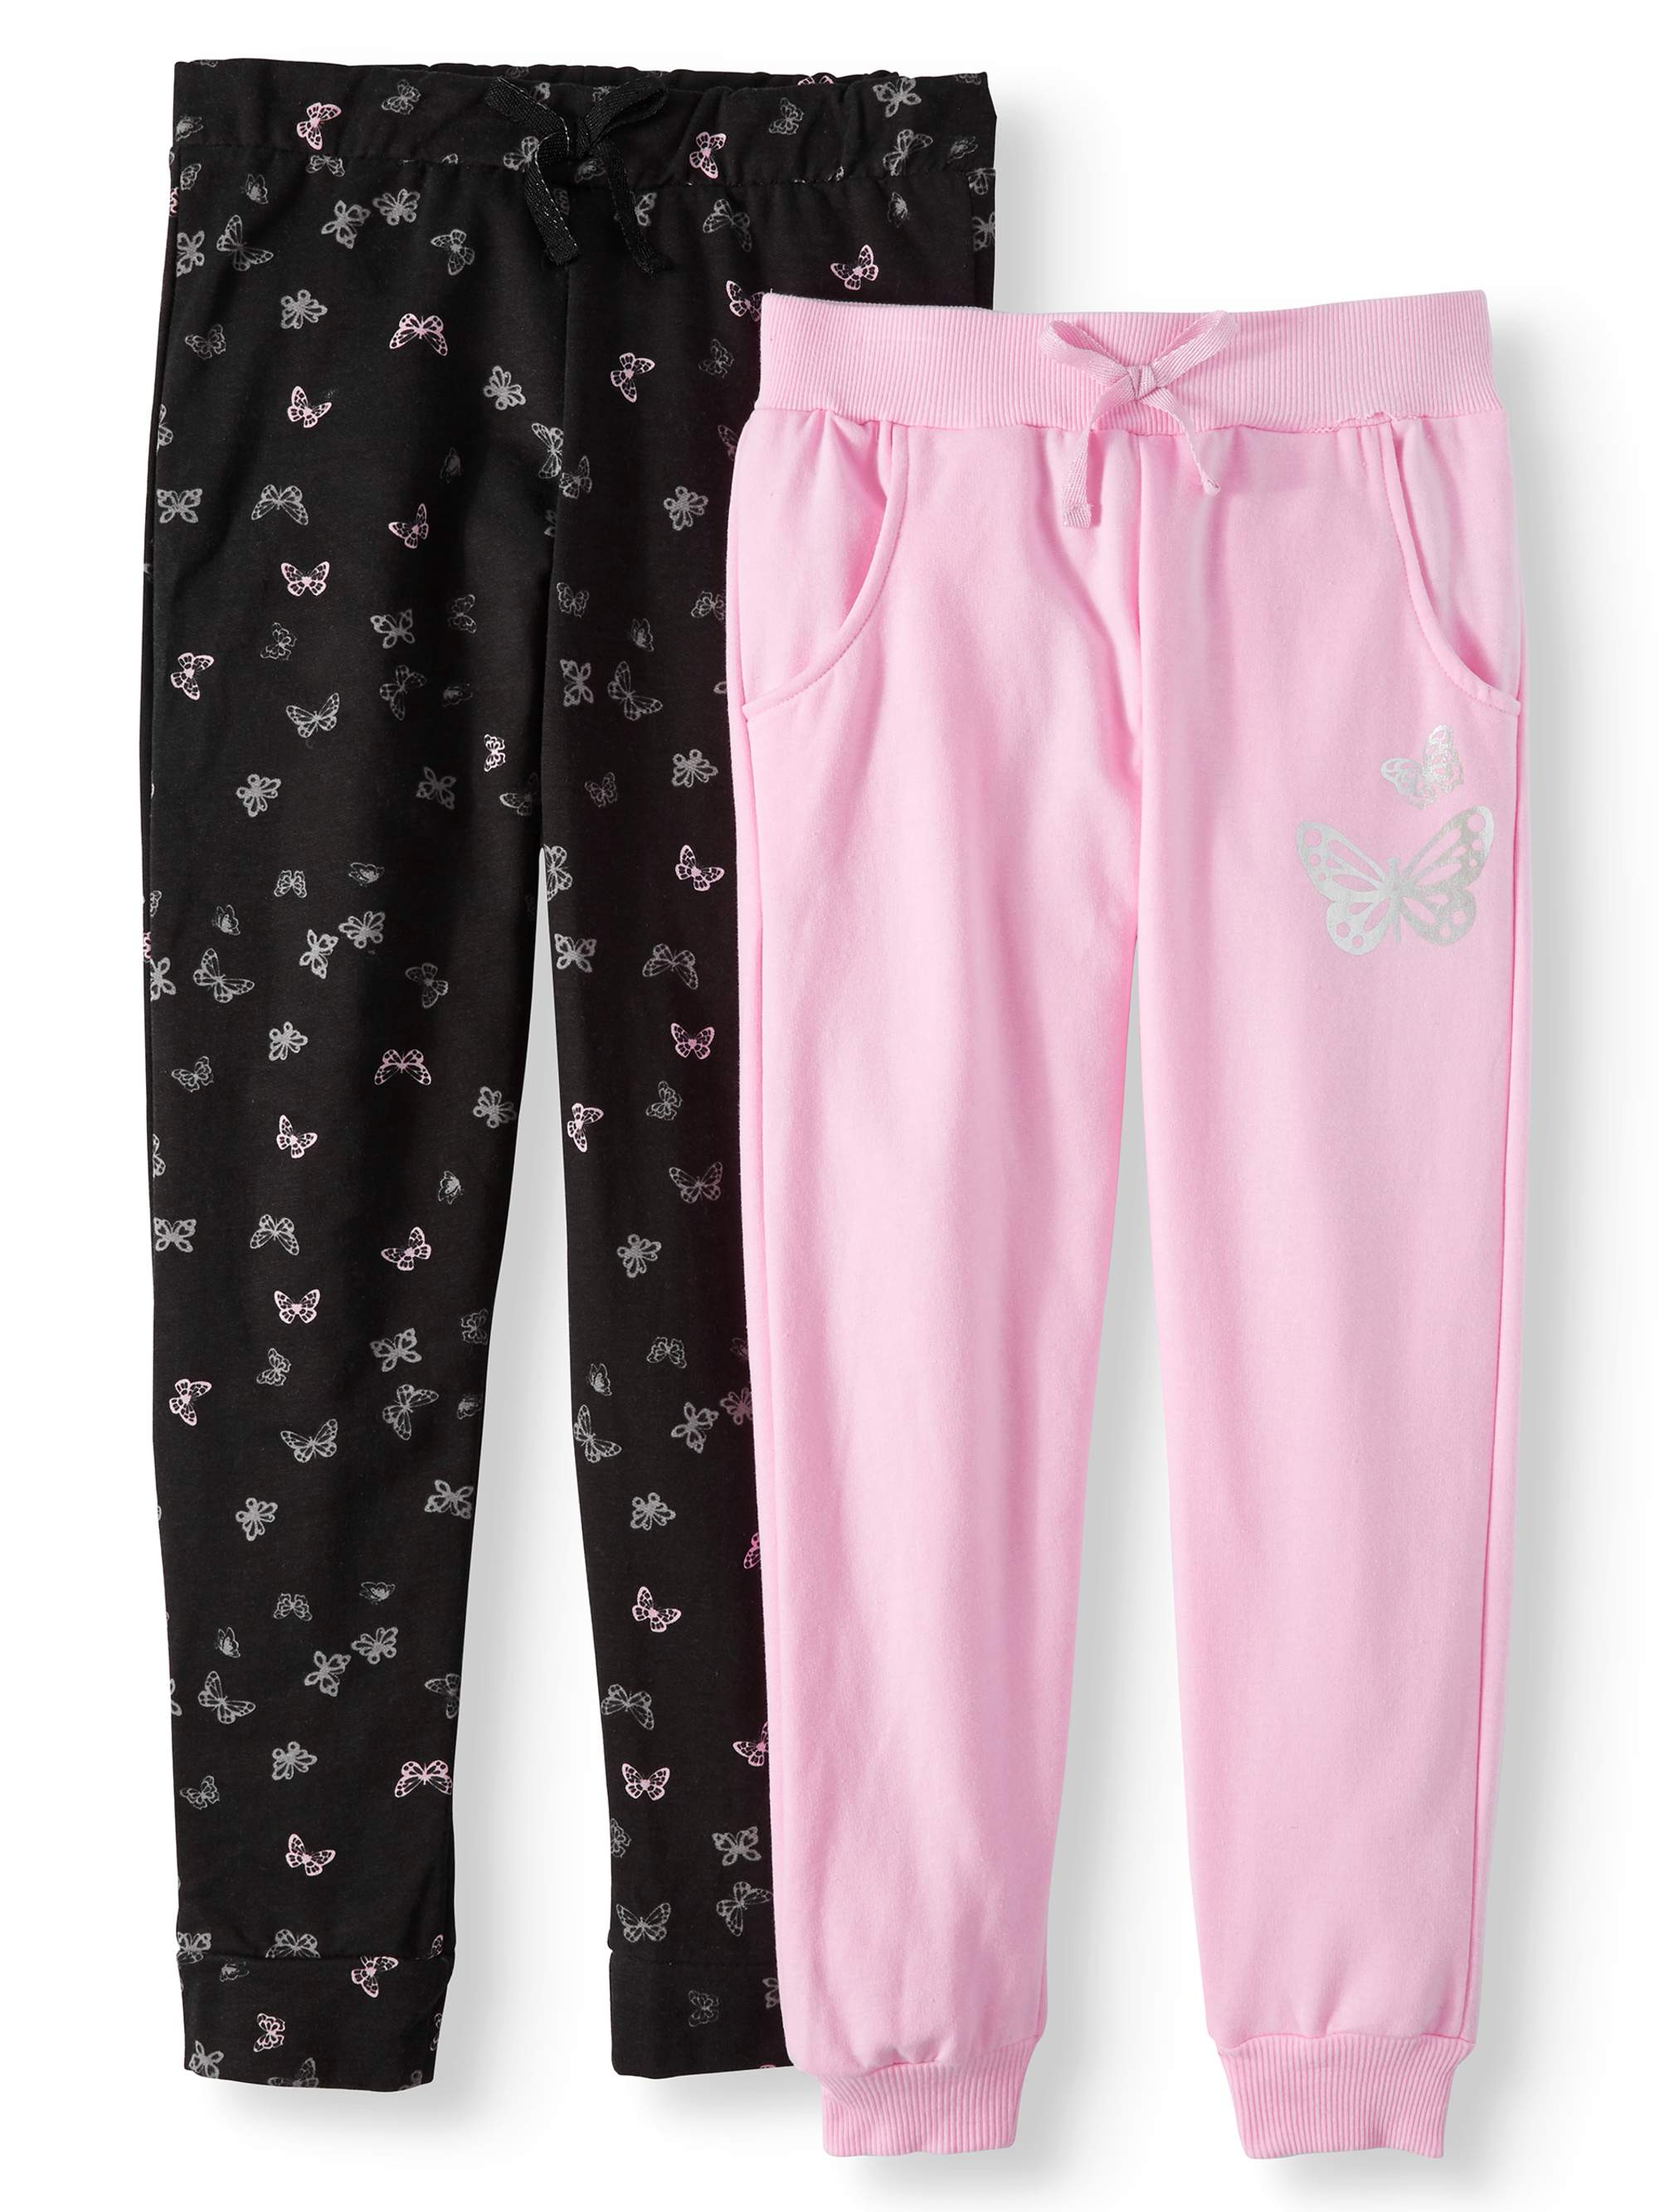 Solid and Metallic Butterfly Fleece Joggers, 2-Pack (Little Girls & Big Girls)